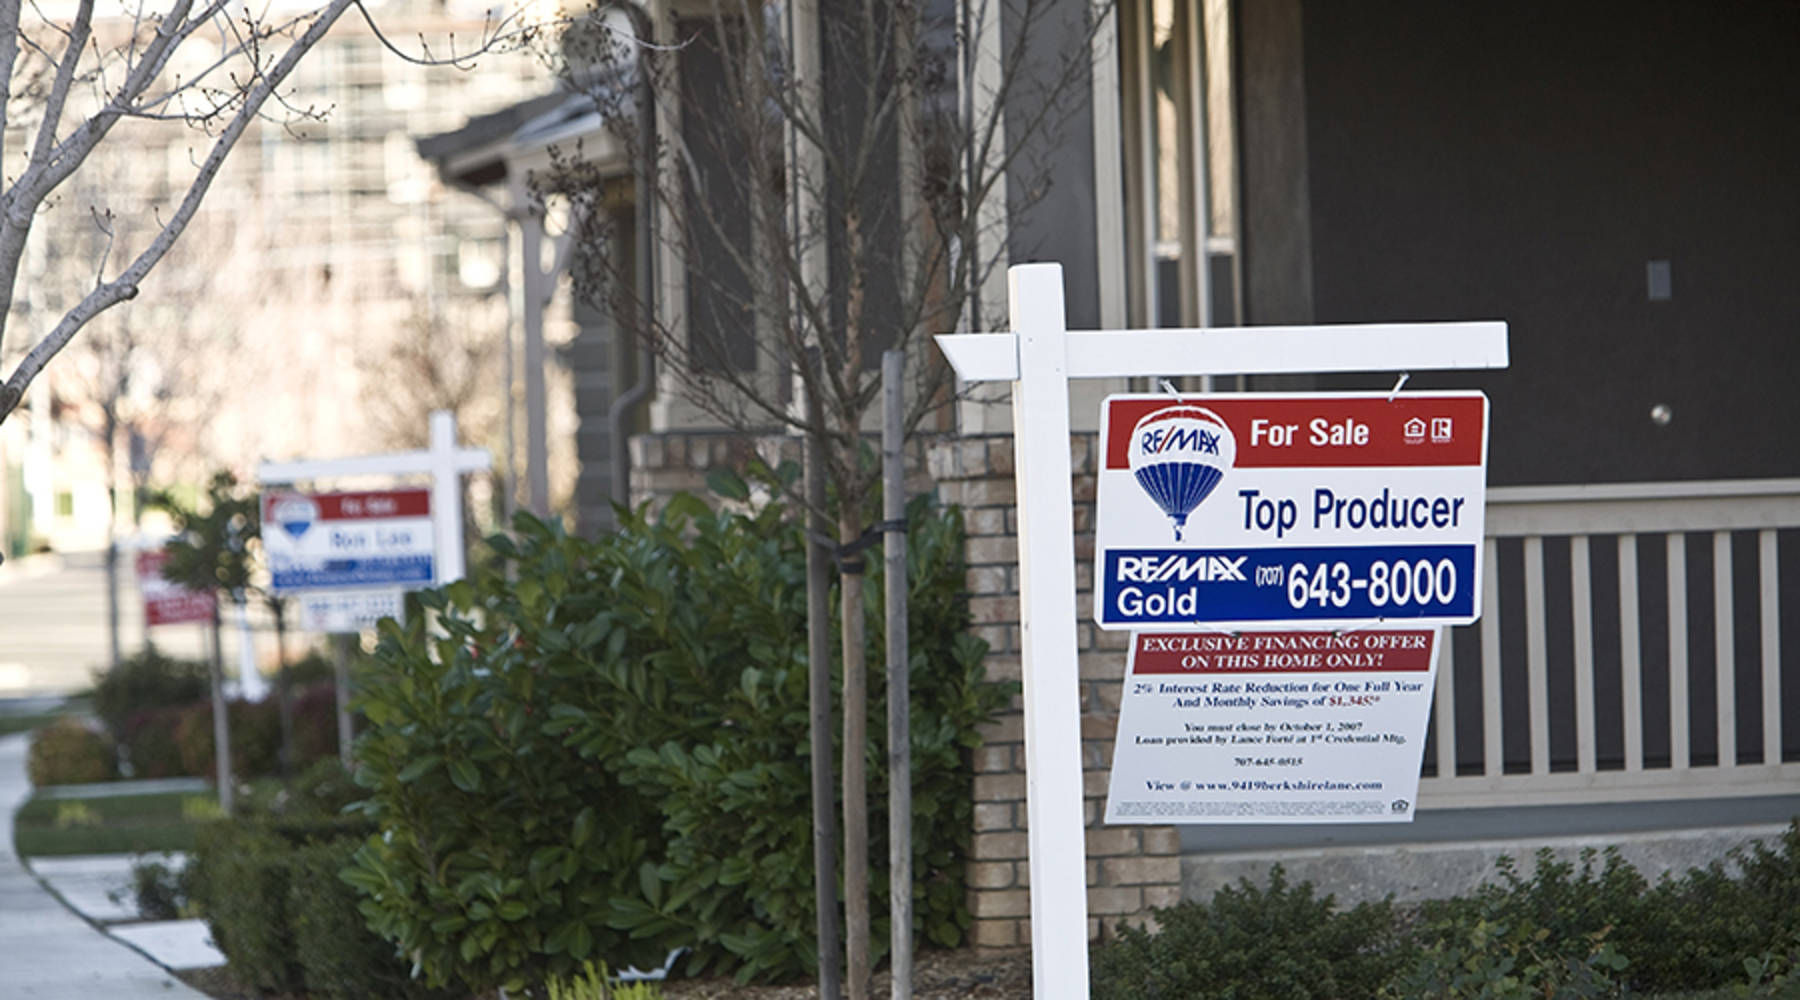 Who controls the data that fuels real estate deals? - Marketplace